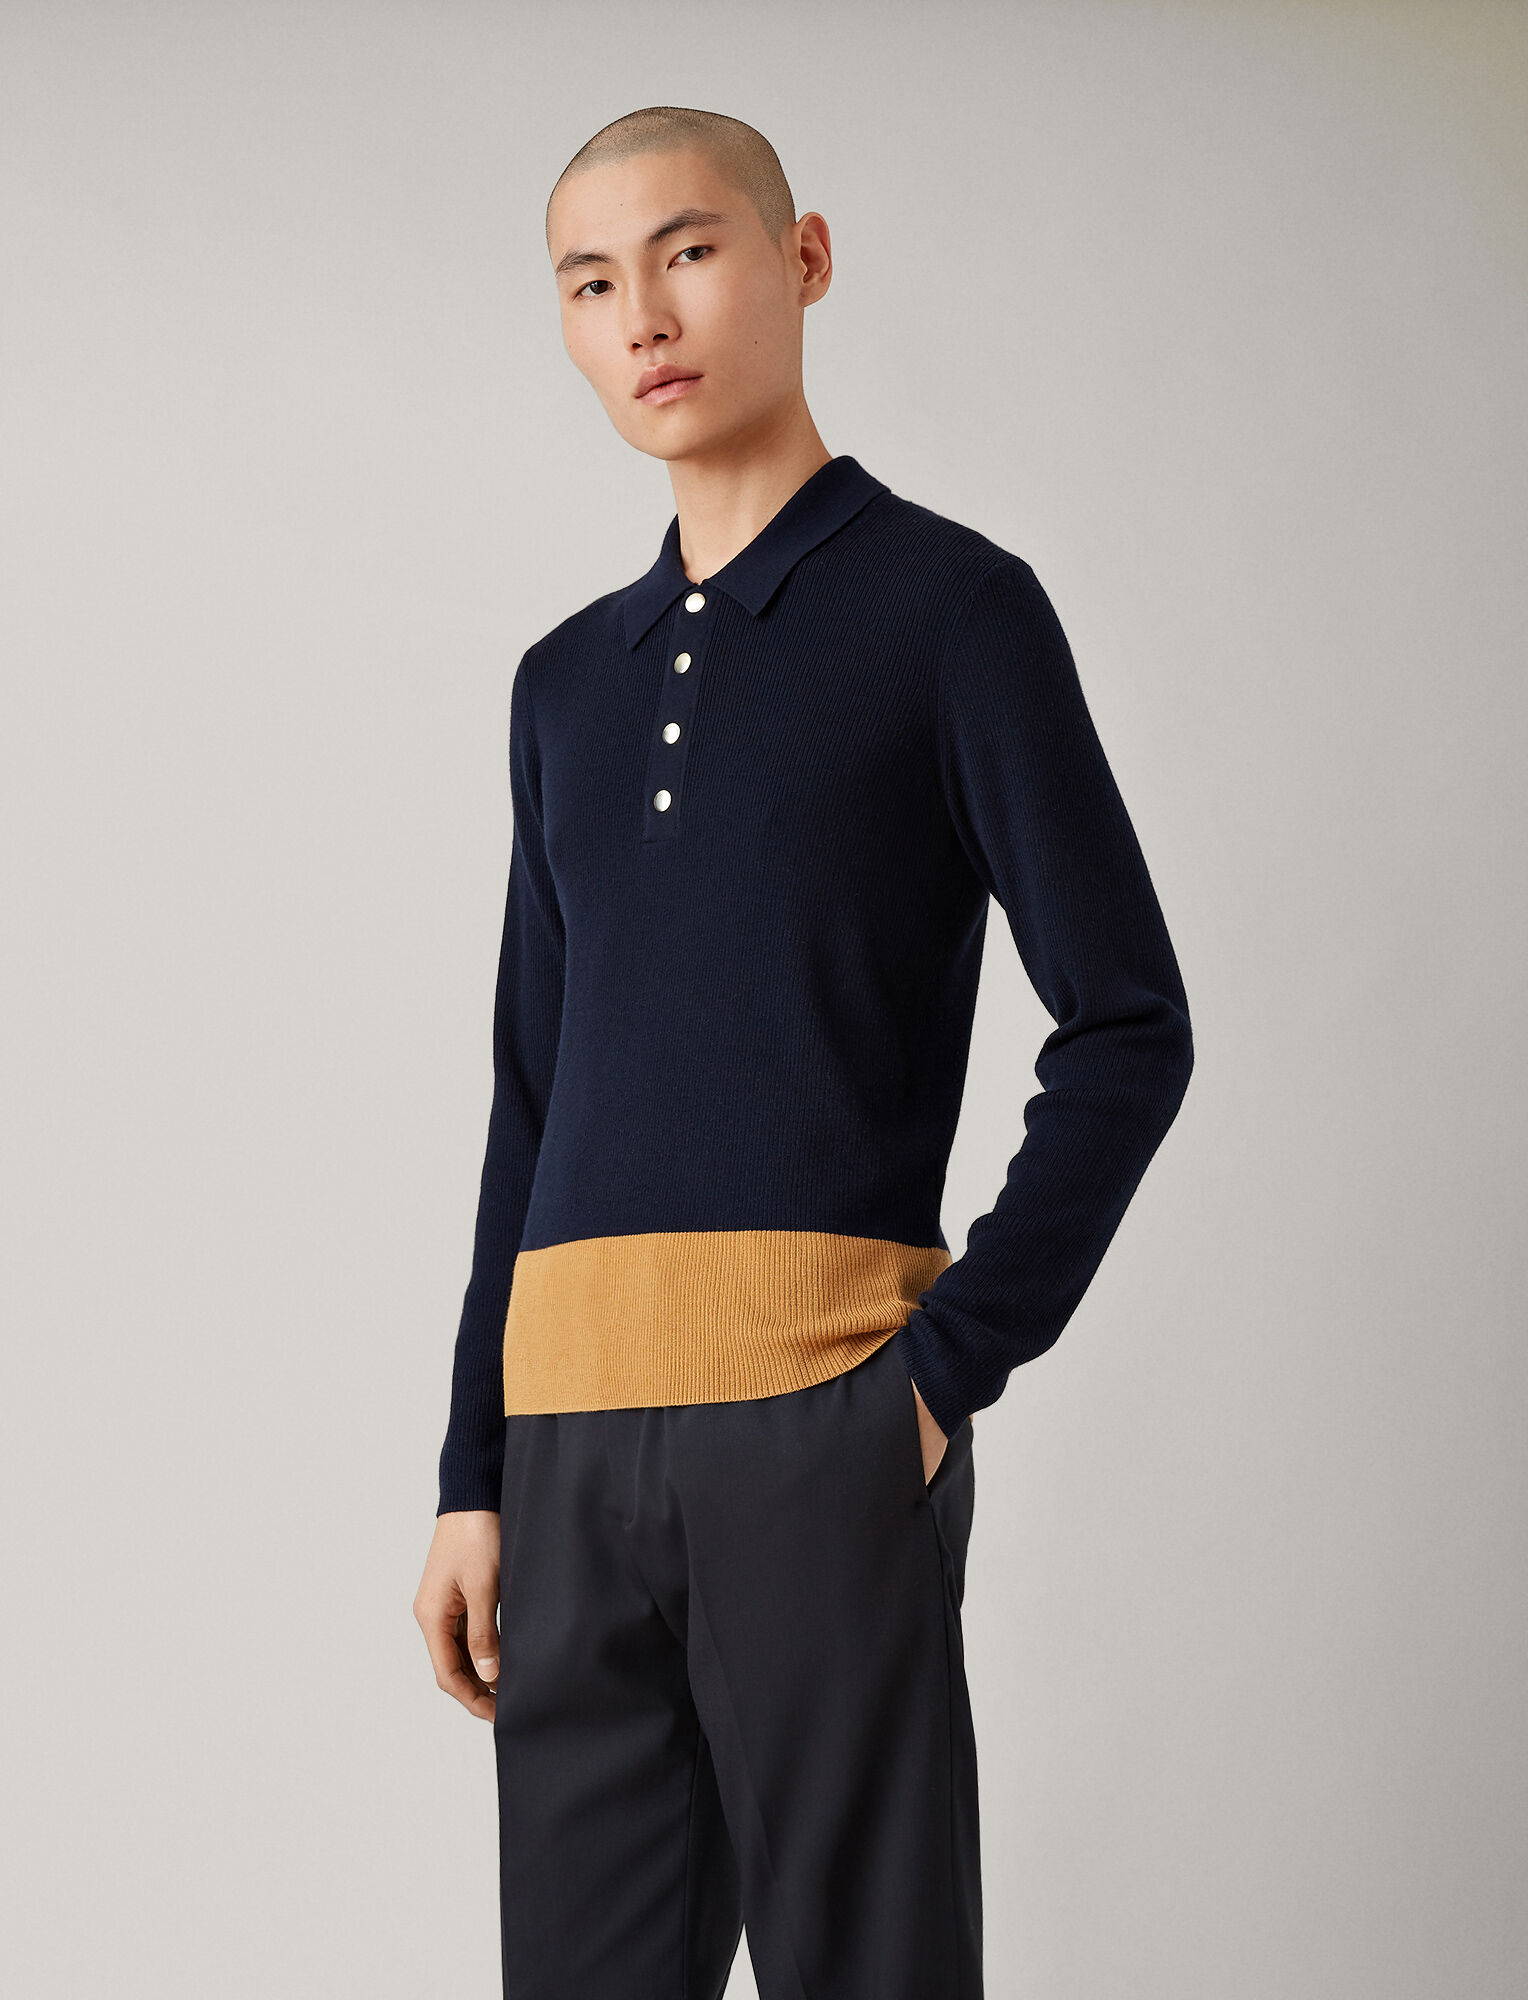 Joseph, Polo Neck Fine Rib + Snaps Knit, in NAVY